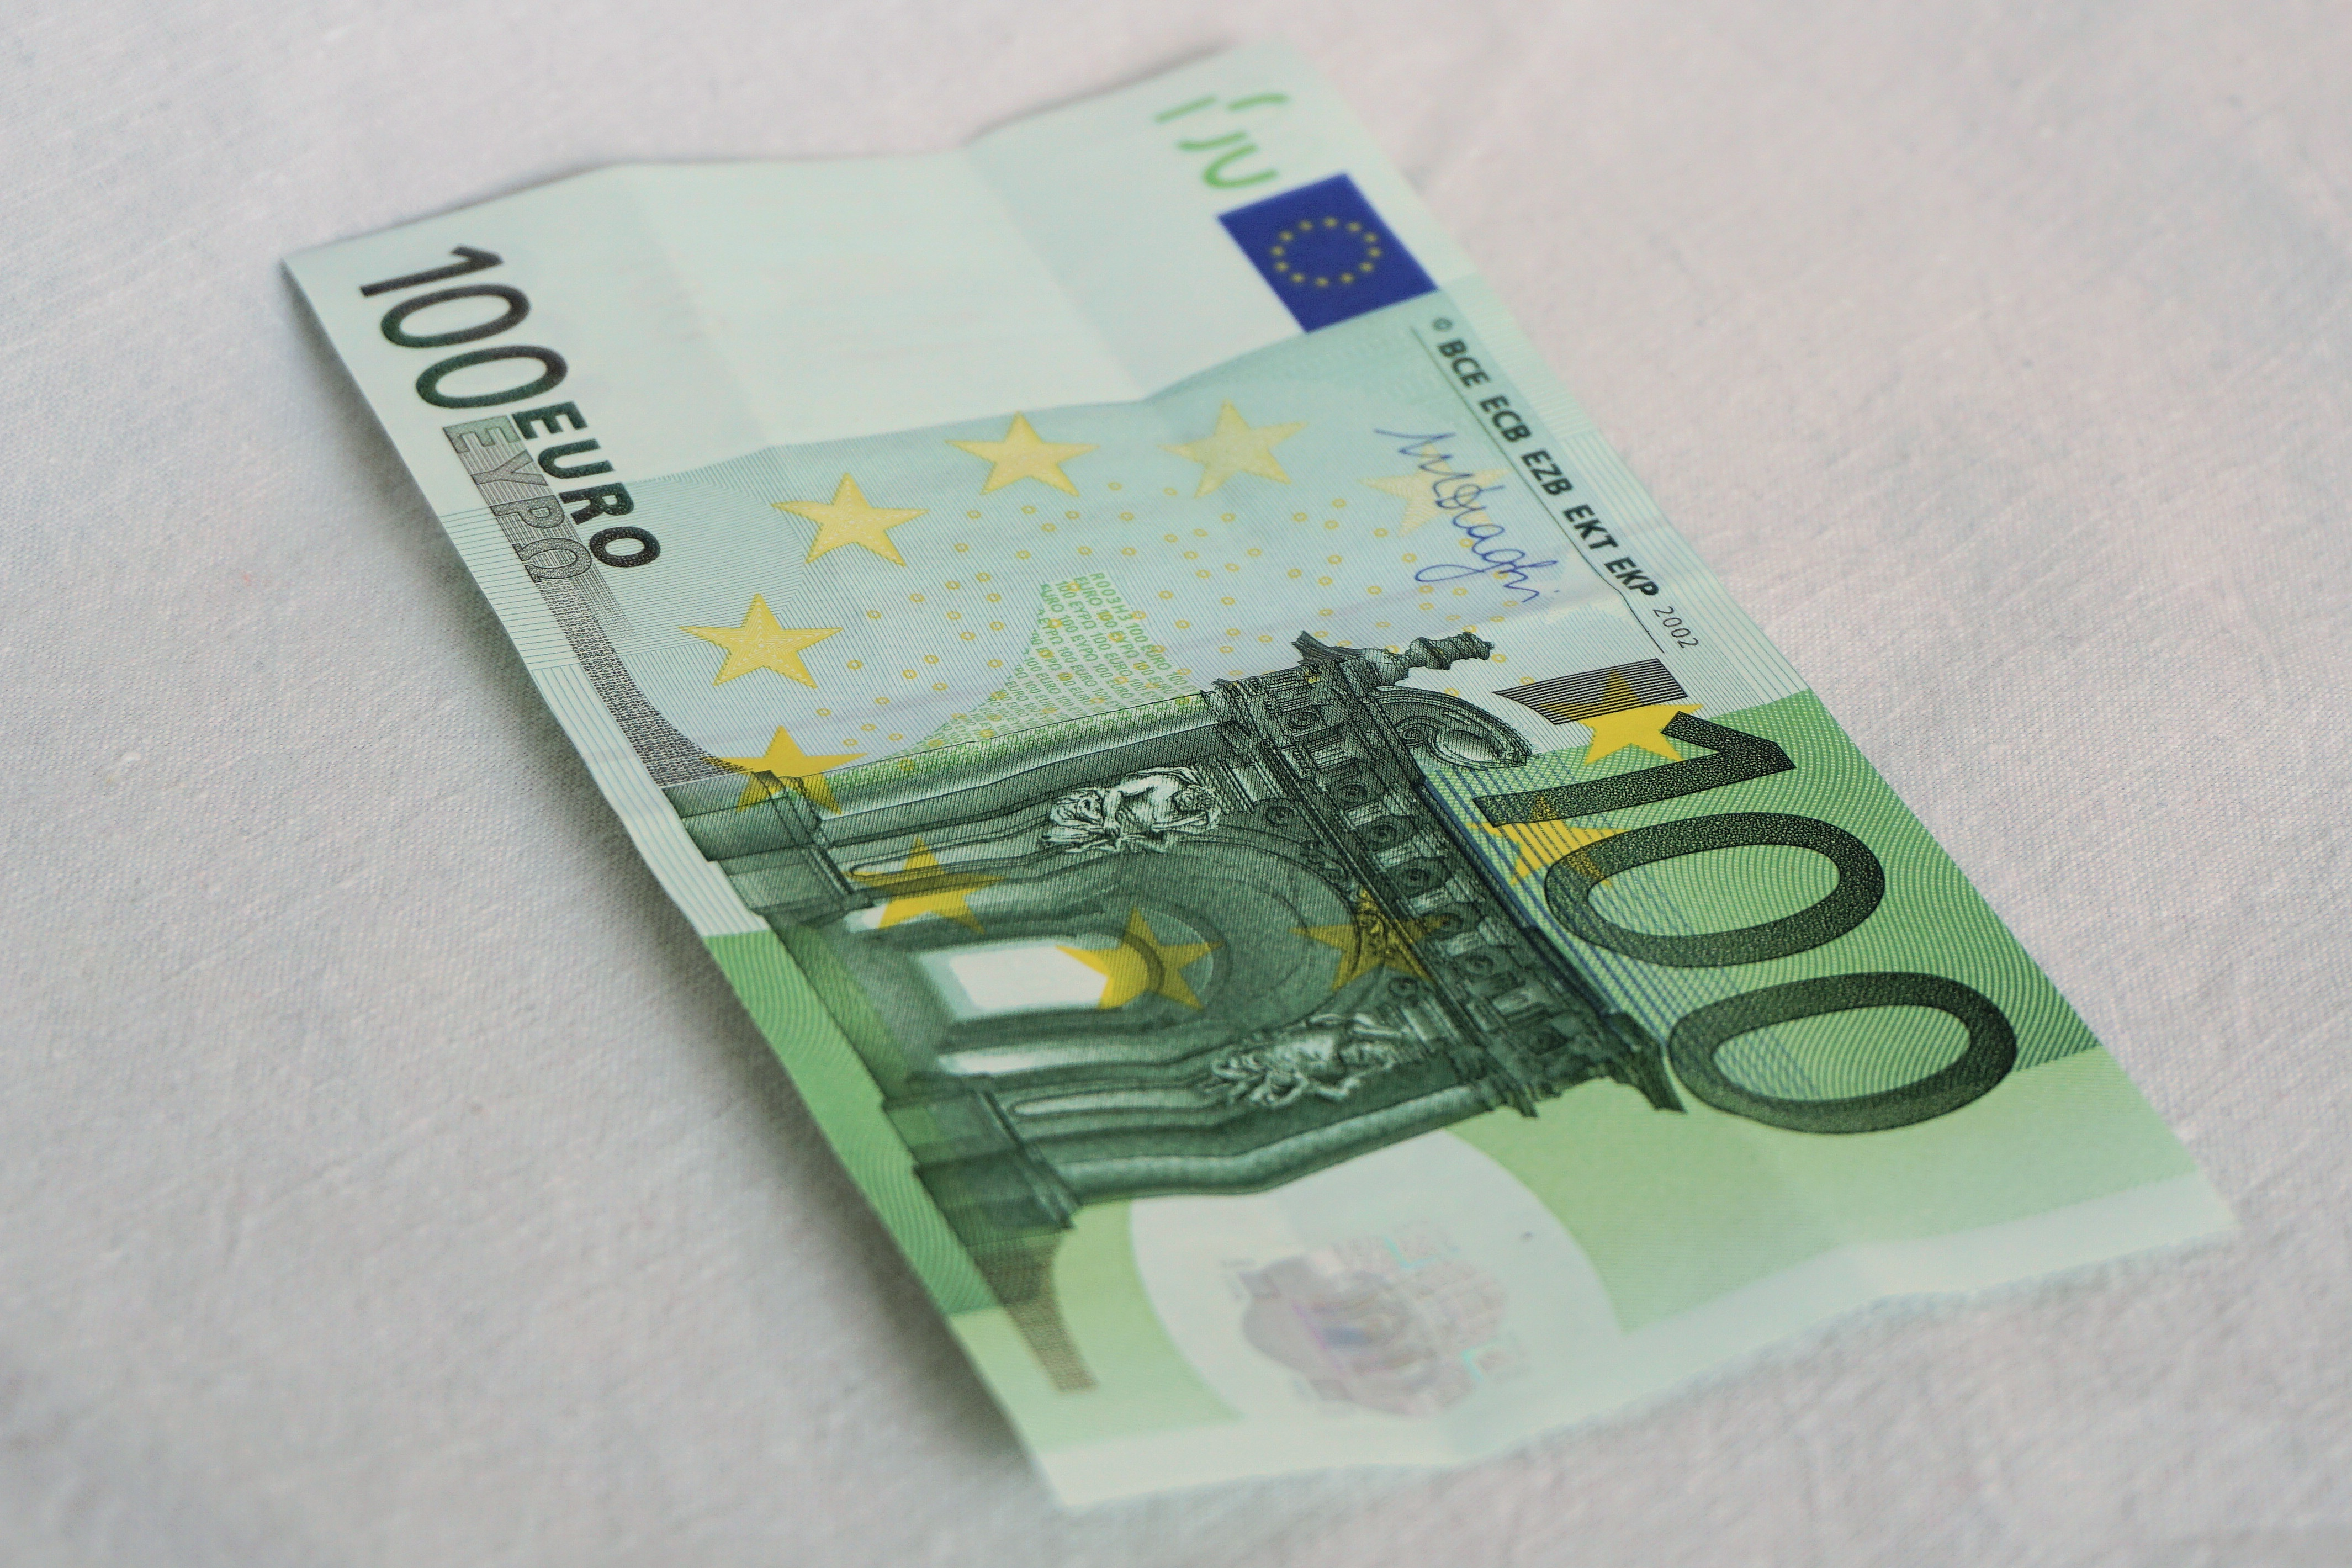 4260x2840 Free Images Europe, Brand, Product, Drawing, Currency, Document